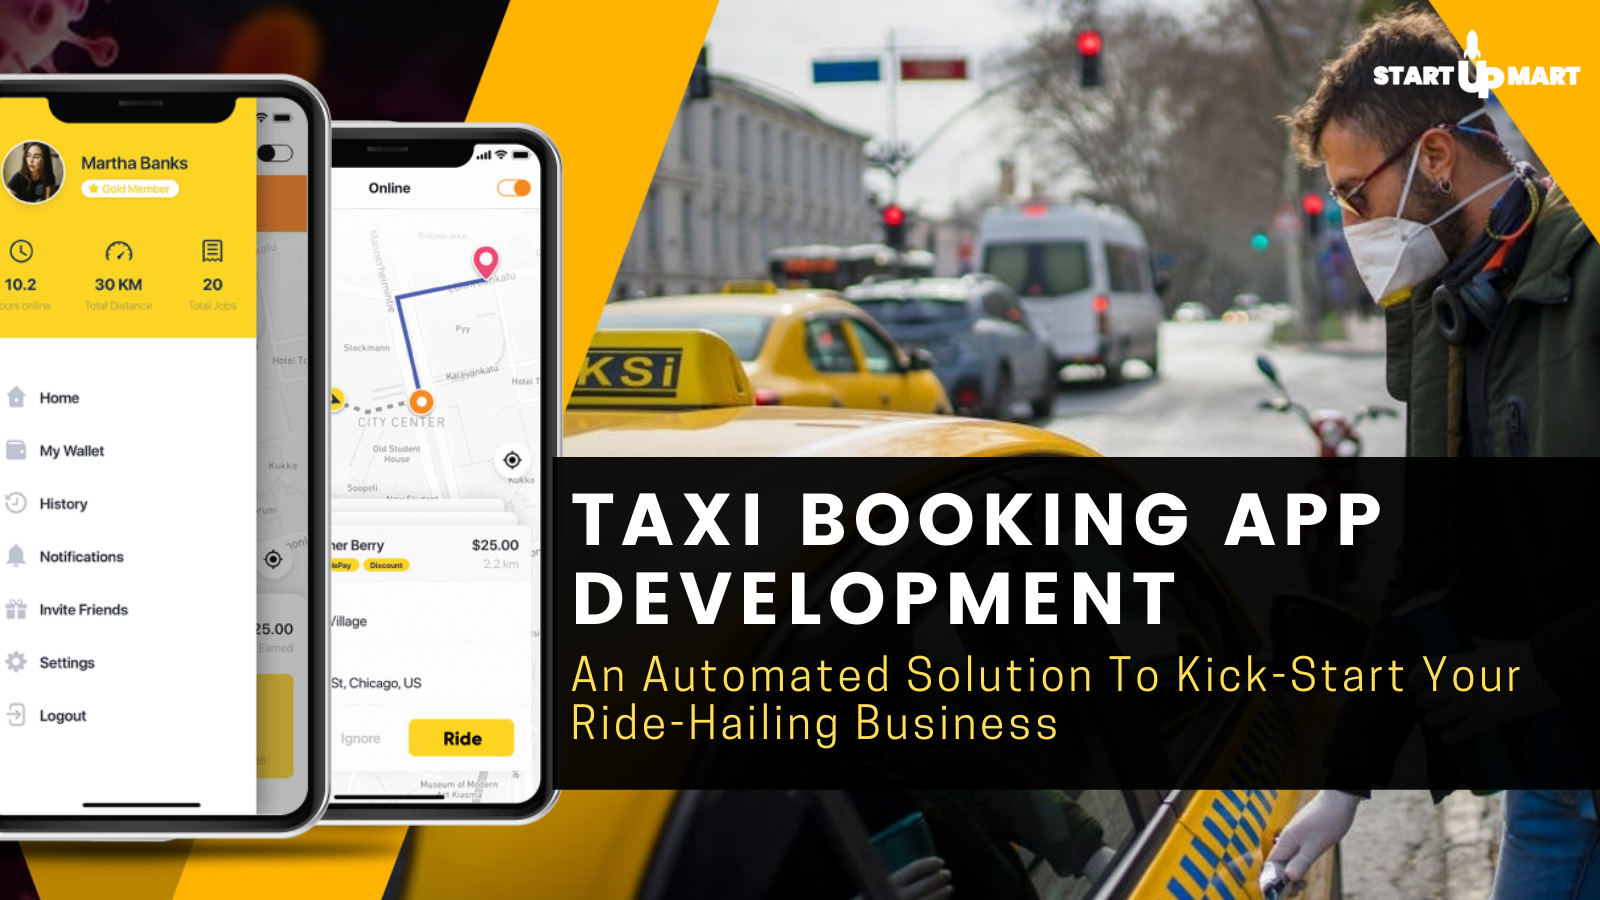 Taxi Booking App Development: An Automated Solution To Kick-Start Your Ride-Hailing Business